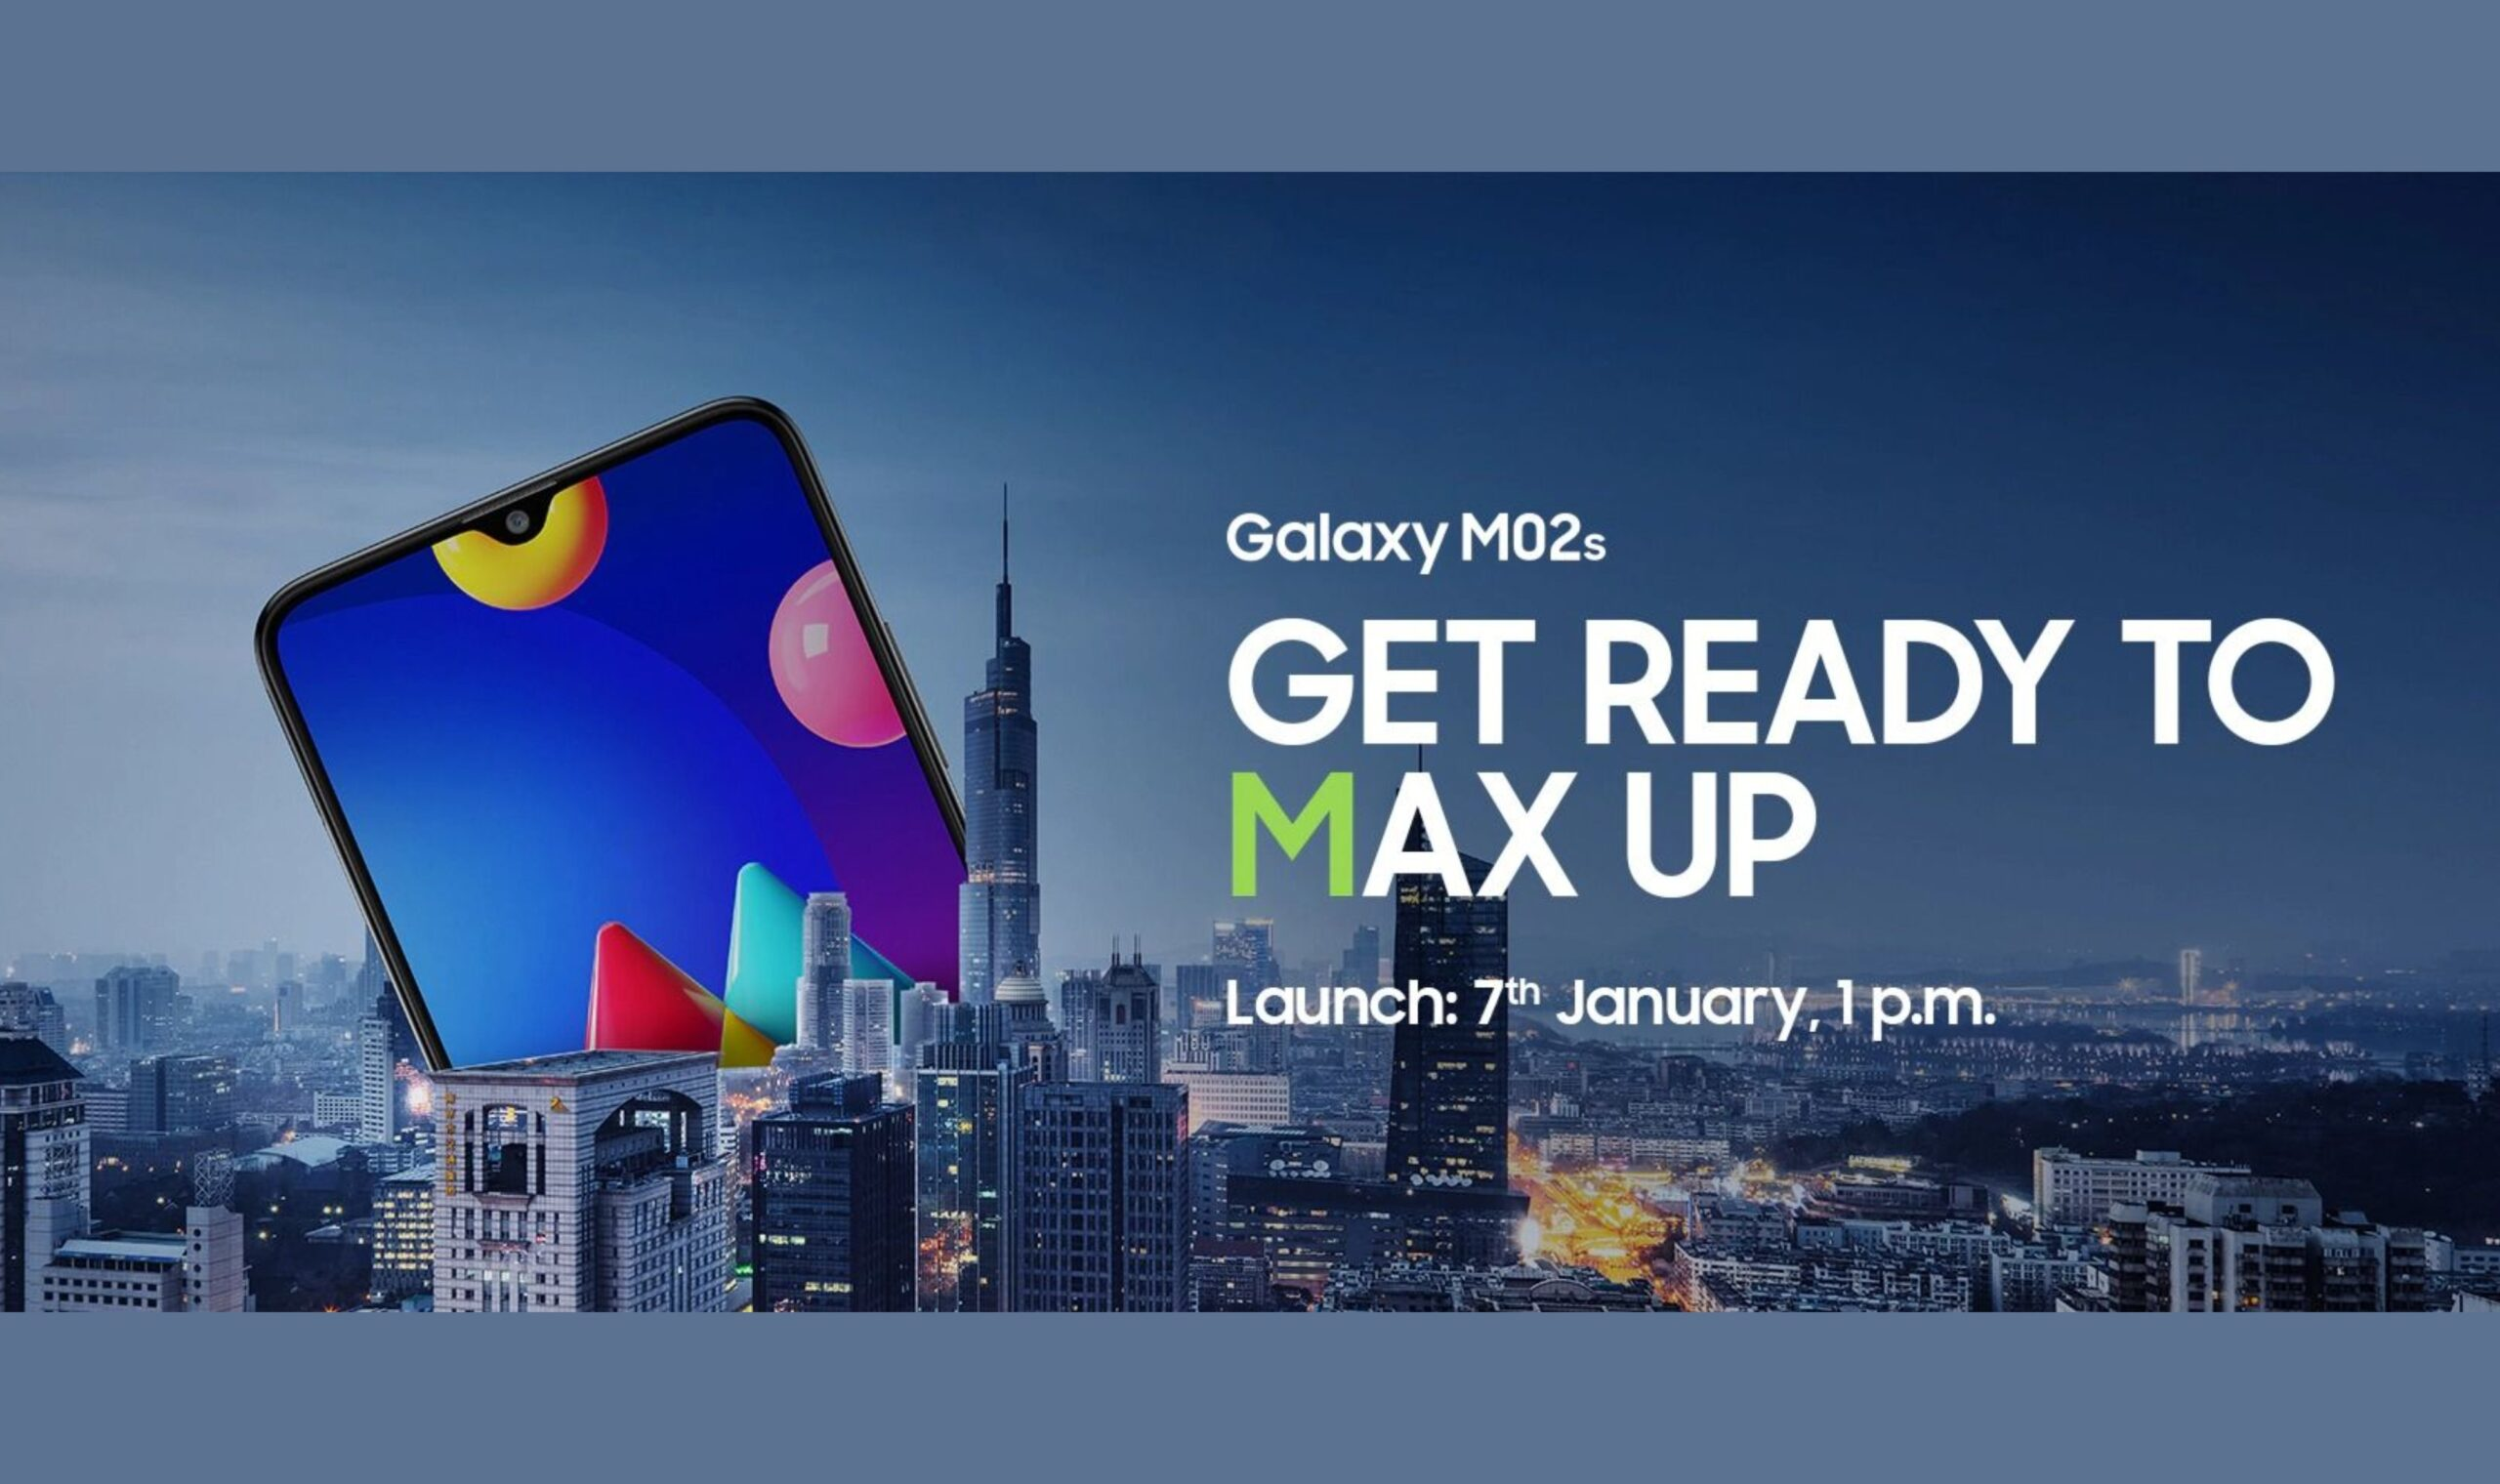 Samsung Galaxy M02s with Snapdragon 450 & 5,000mAh battery launched for Rs 8,999